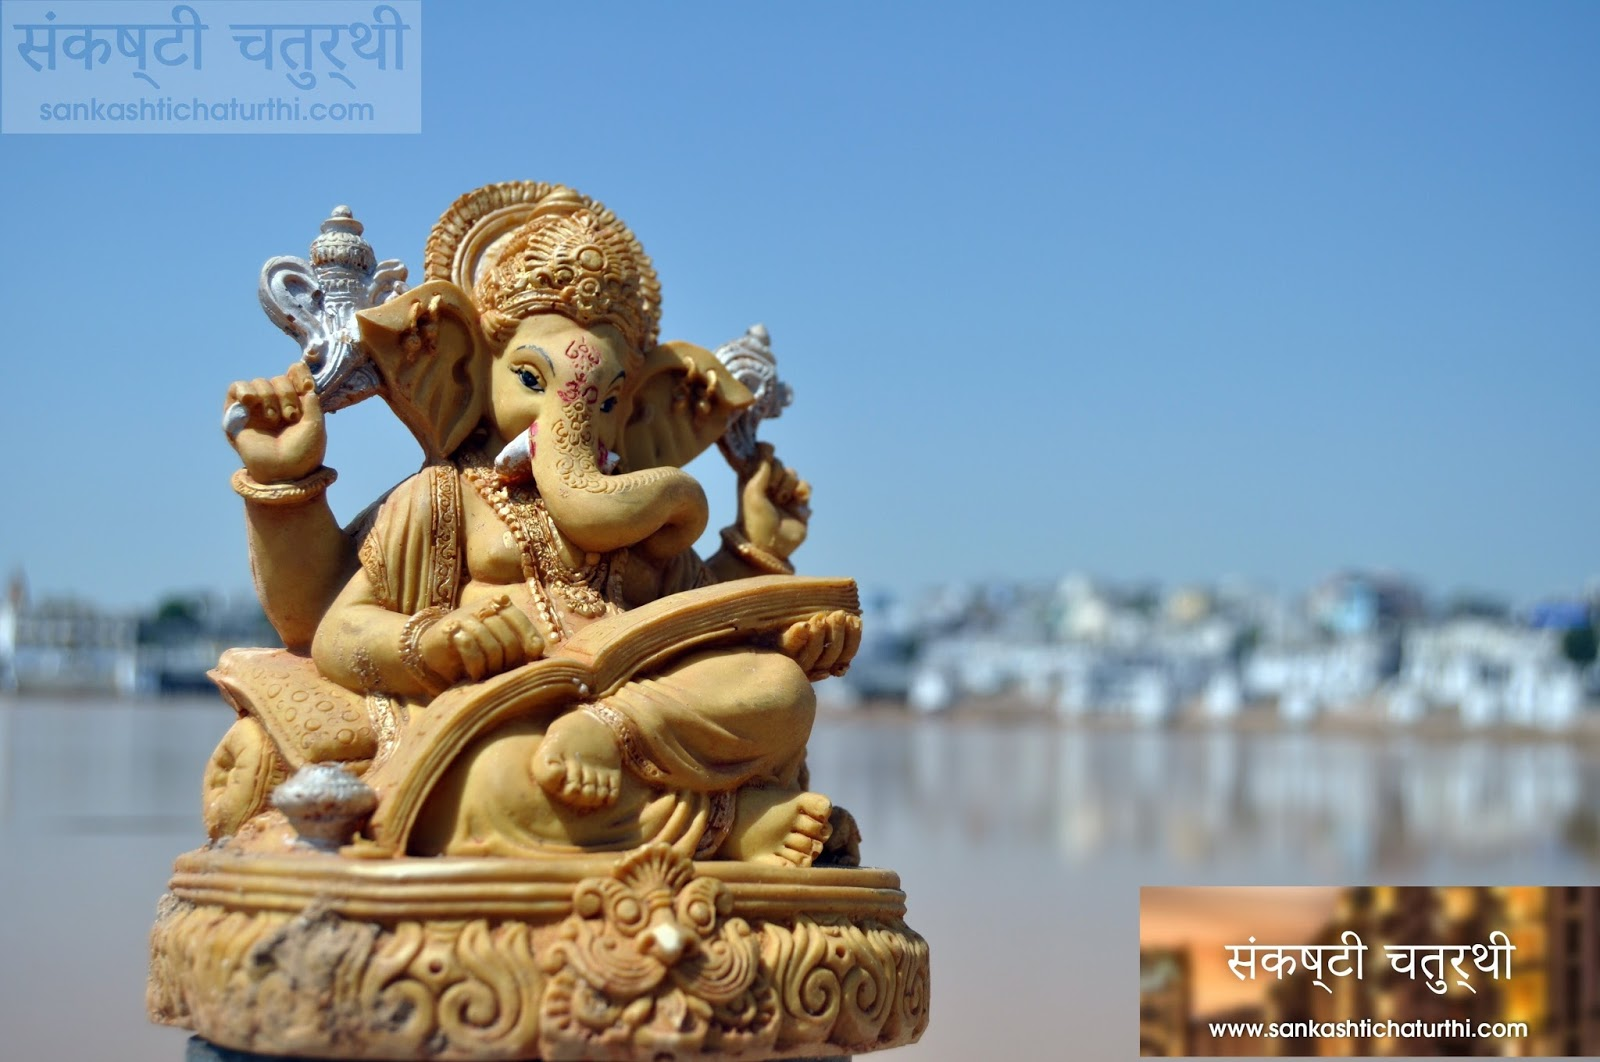 Ganesha chaturthi images and wallpaper 2017 free hd ganesh ganesha wallpaper and images 2017 2016 thecheapjerseys Choice Image